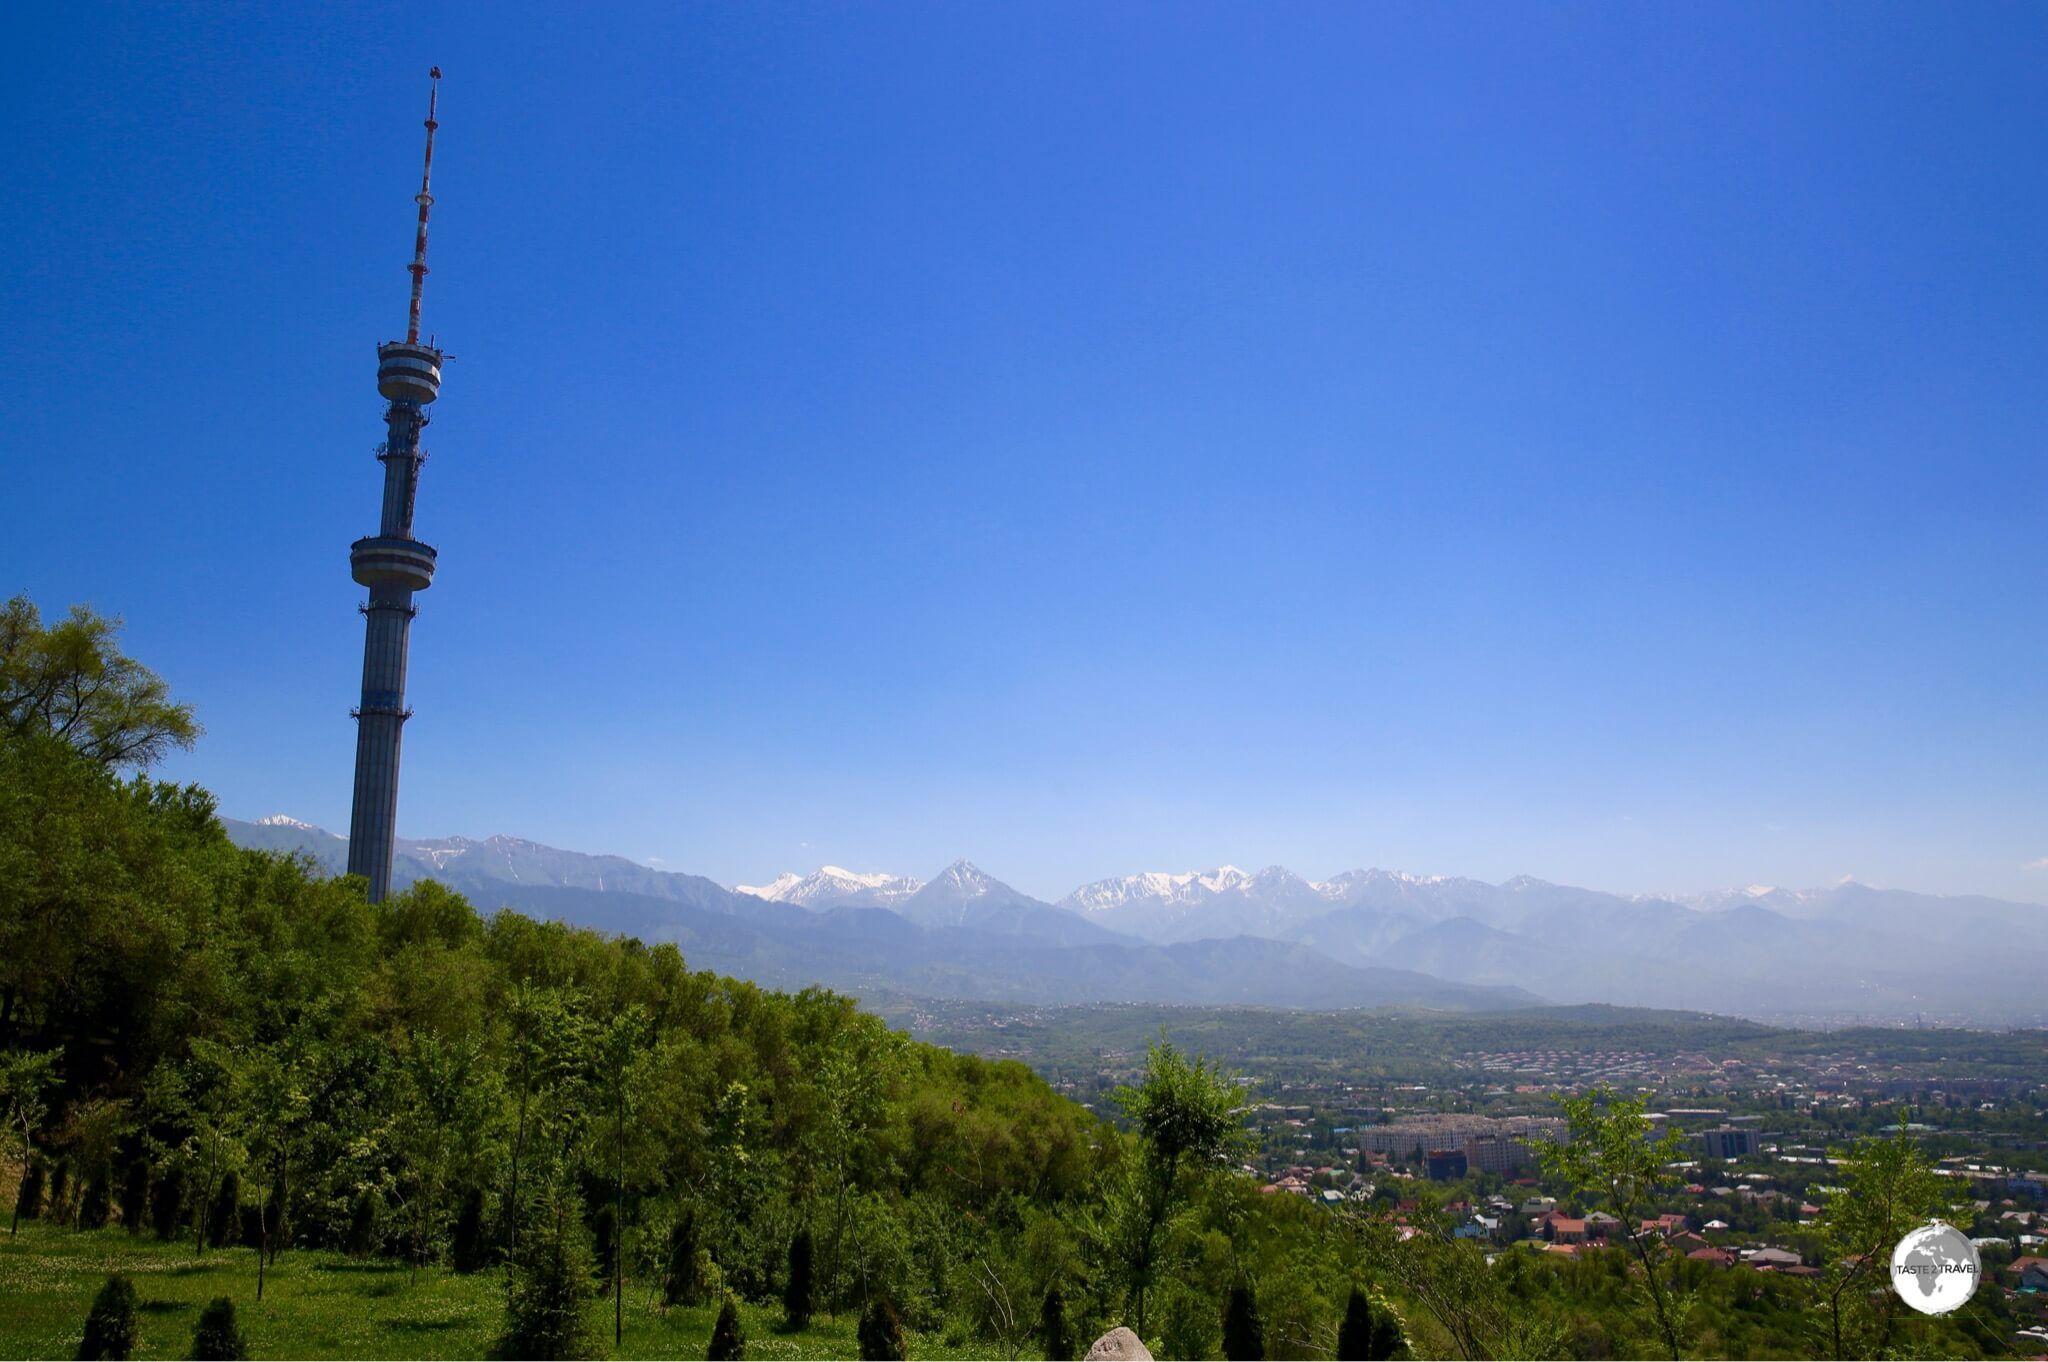 A view of the 372 metre TV tower and the Tian Shan mountains from Kok Tobe.